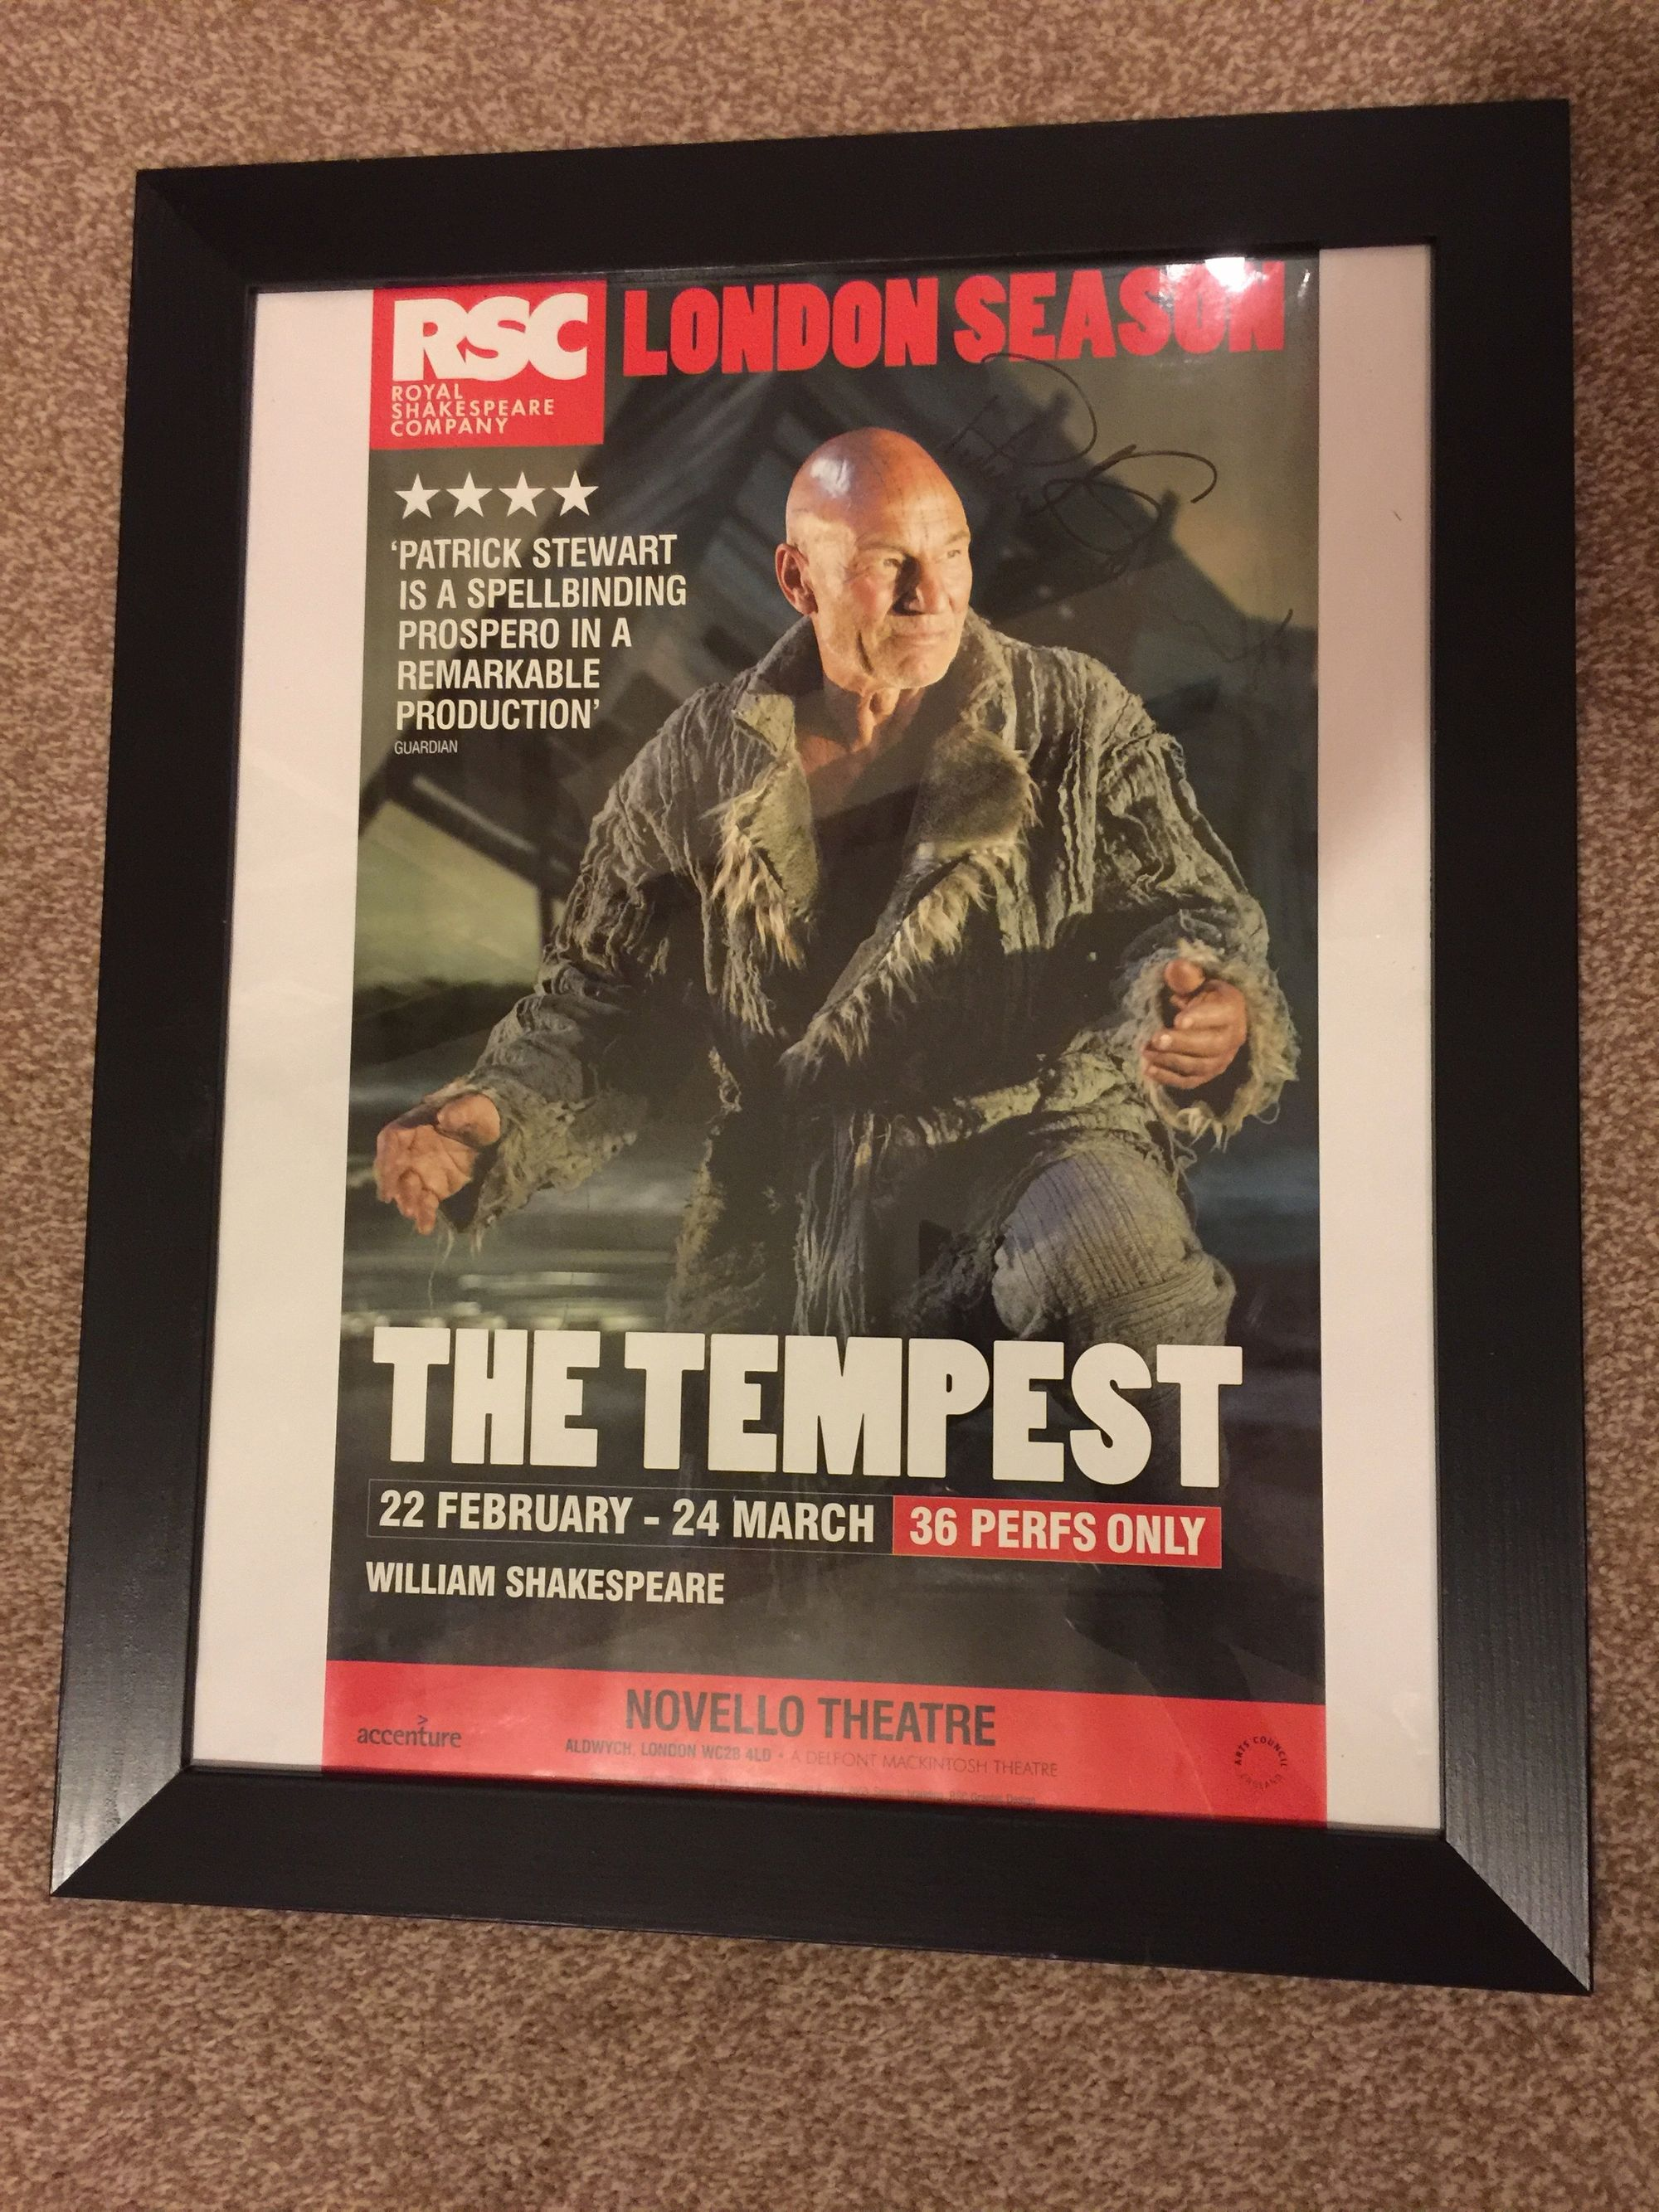 Patrick-Stewart-signed-poster-in-frame